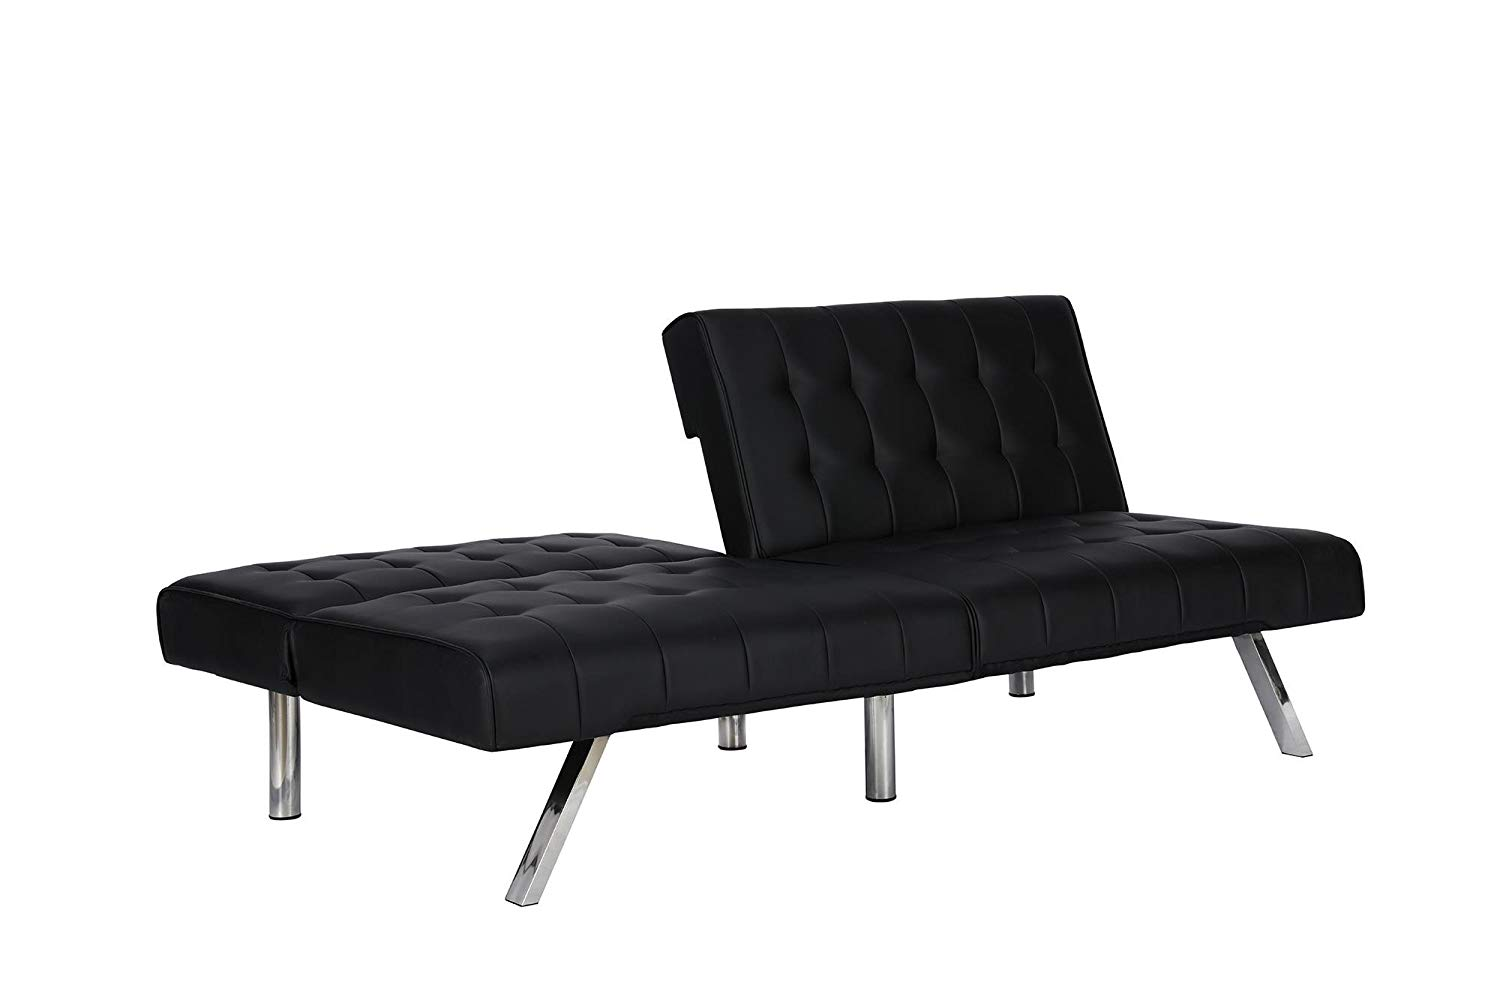 DHP Emily Sectional Futon Sofa with Convertible Chaise Lounge